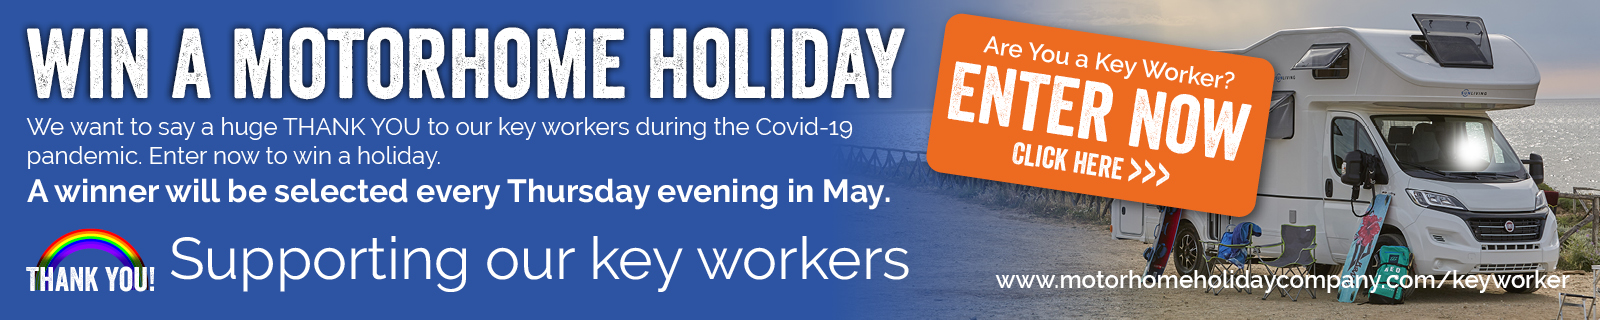 Key worker competition banner to win a motorhome holiday